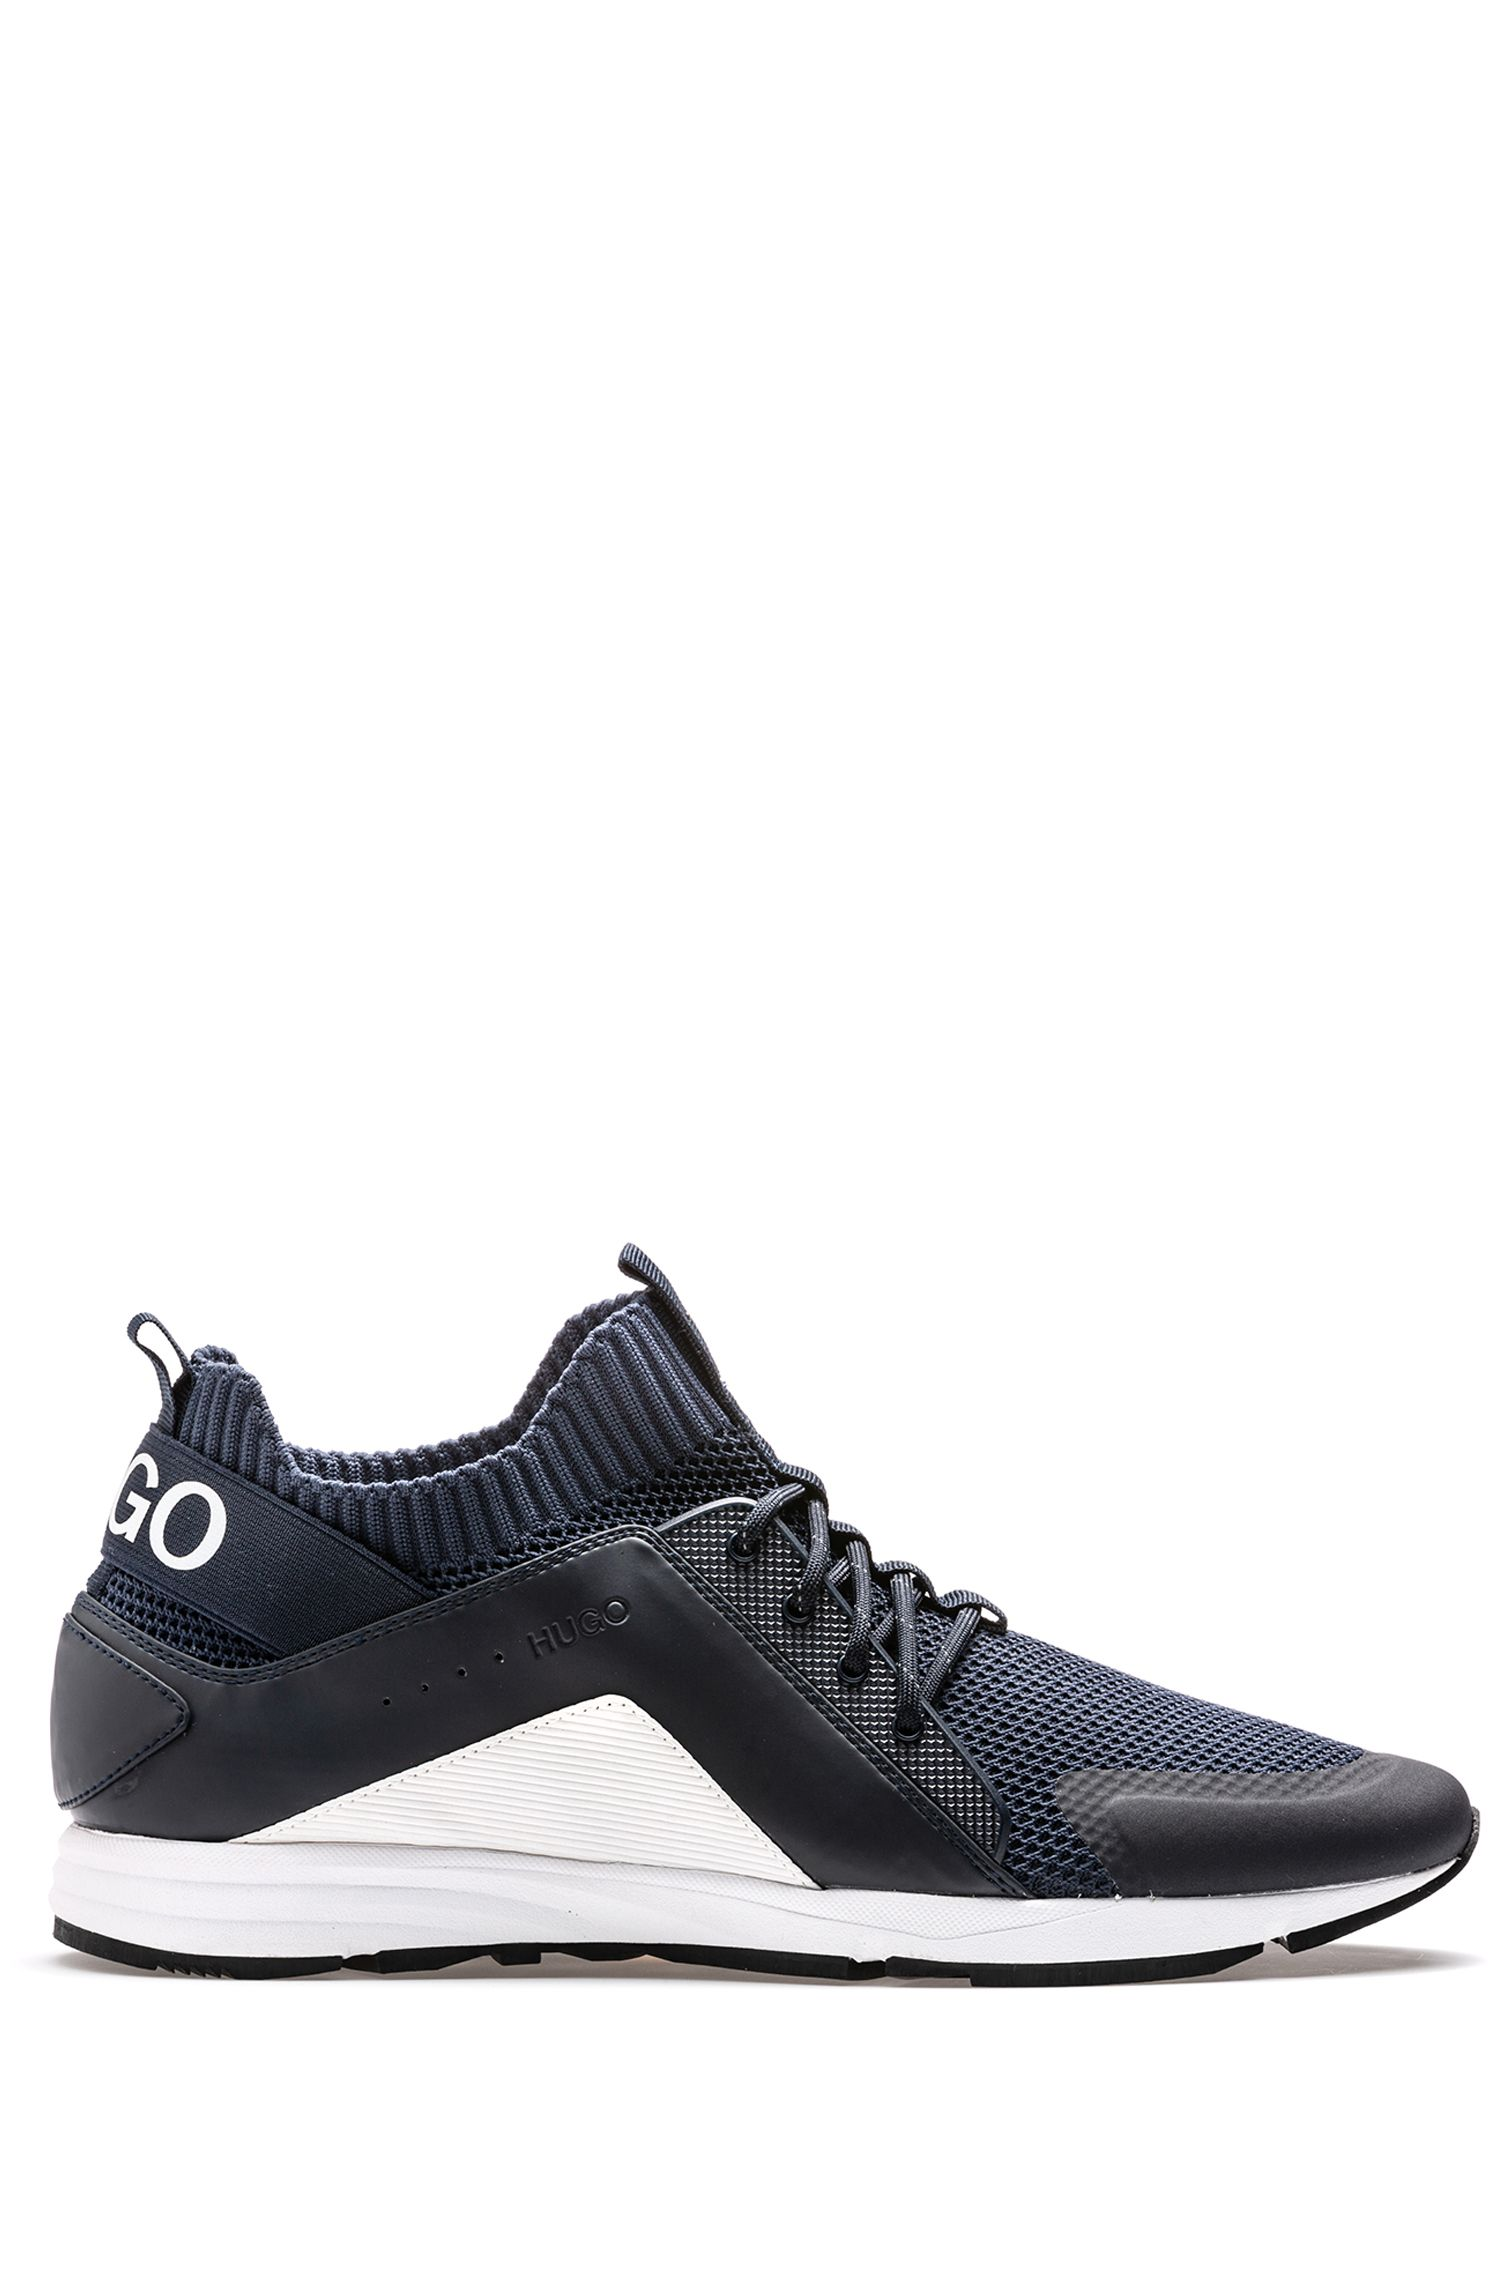 Running-inspired sneakers with Vibram sole and knitted sock, Dark Blue